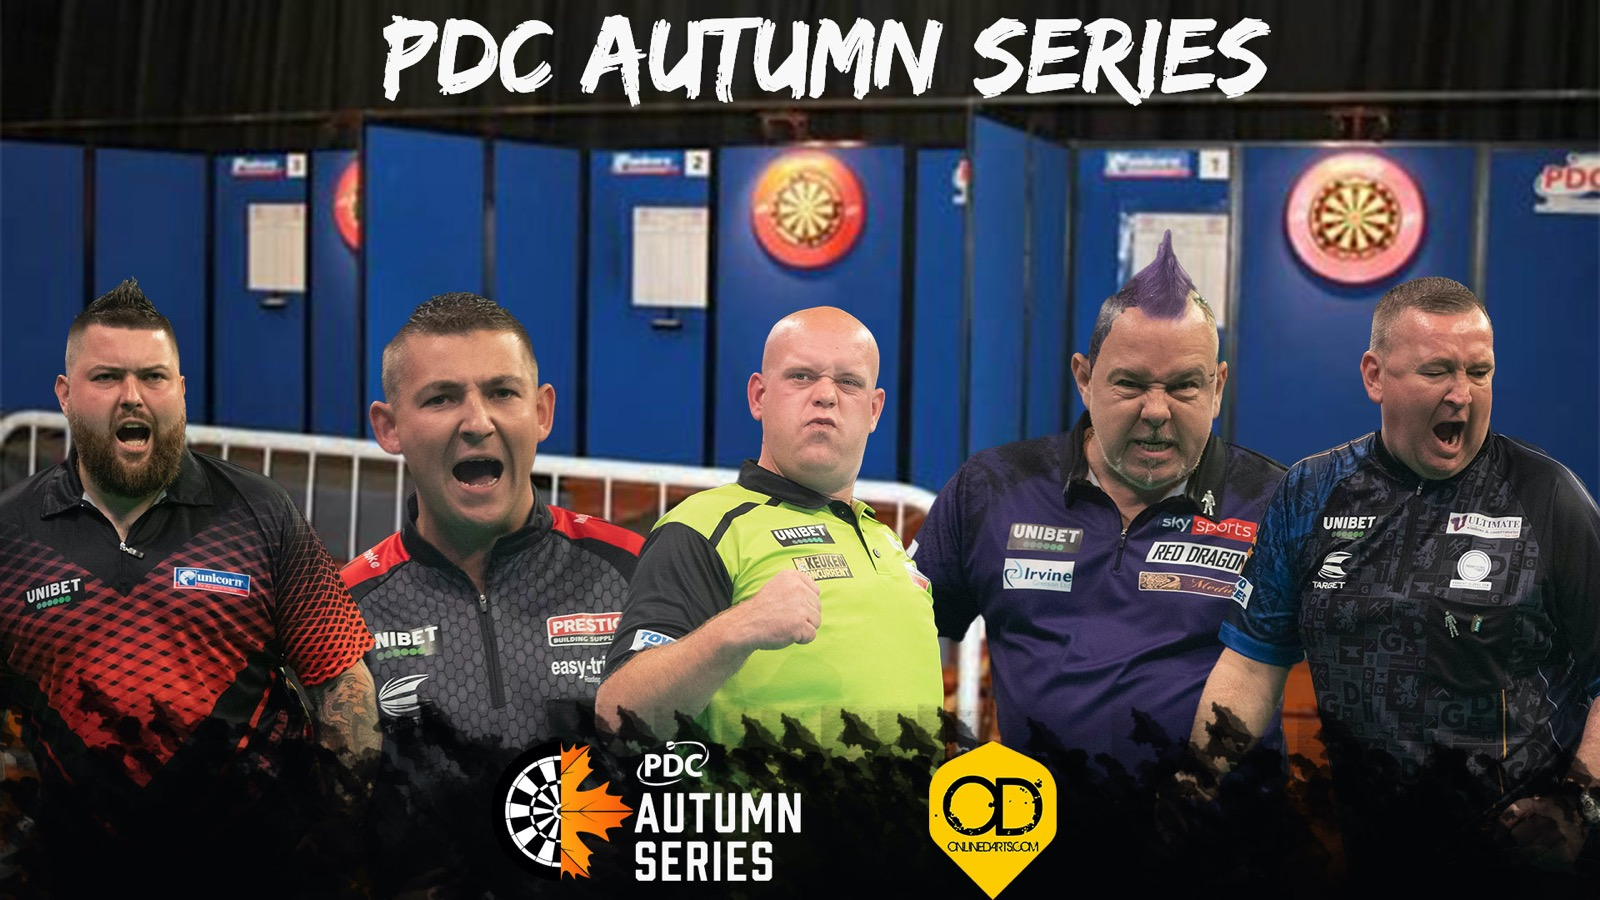 PDC Autumn Series: How to follow the action